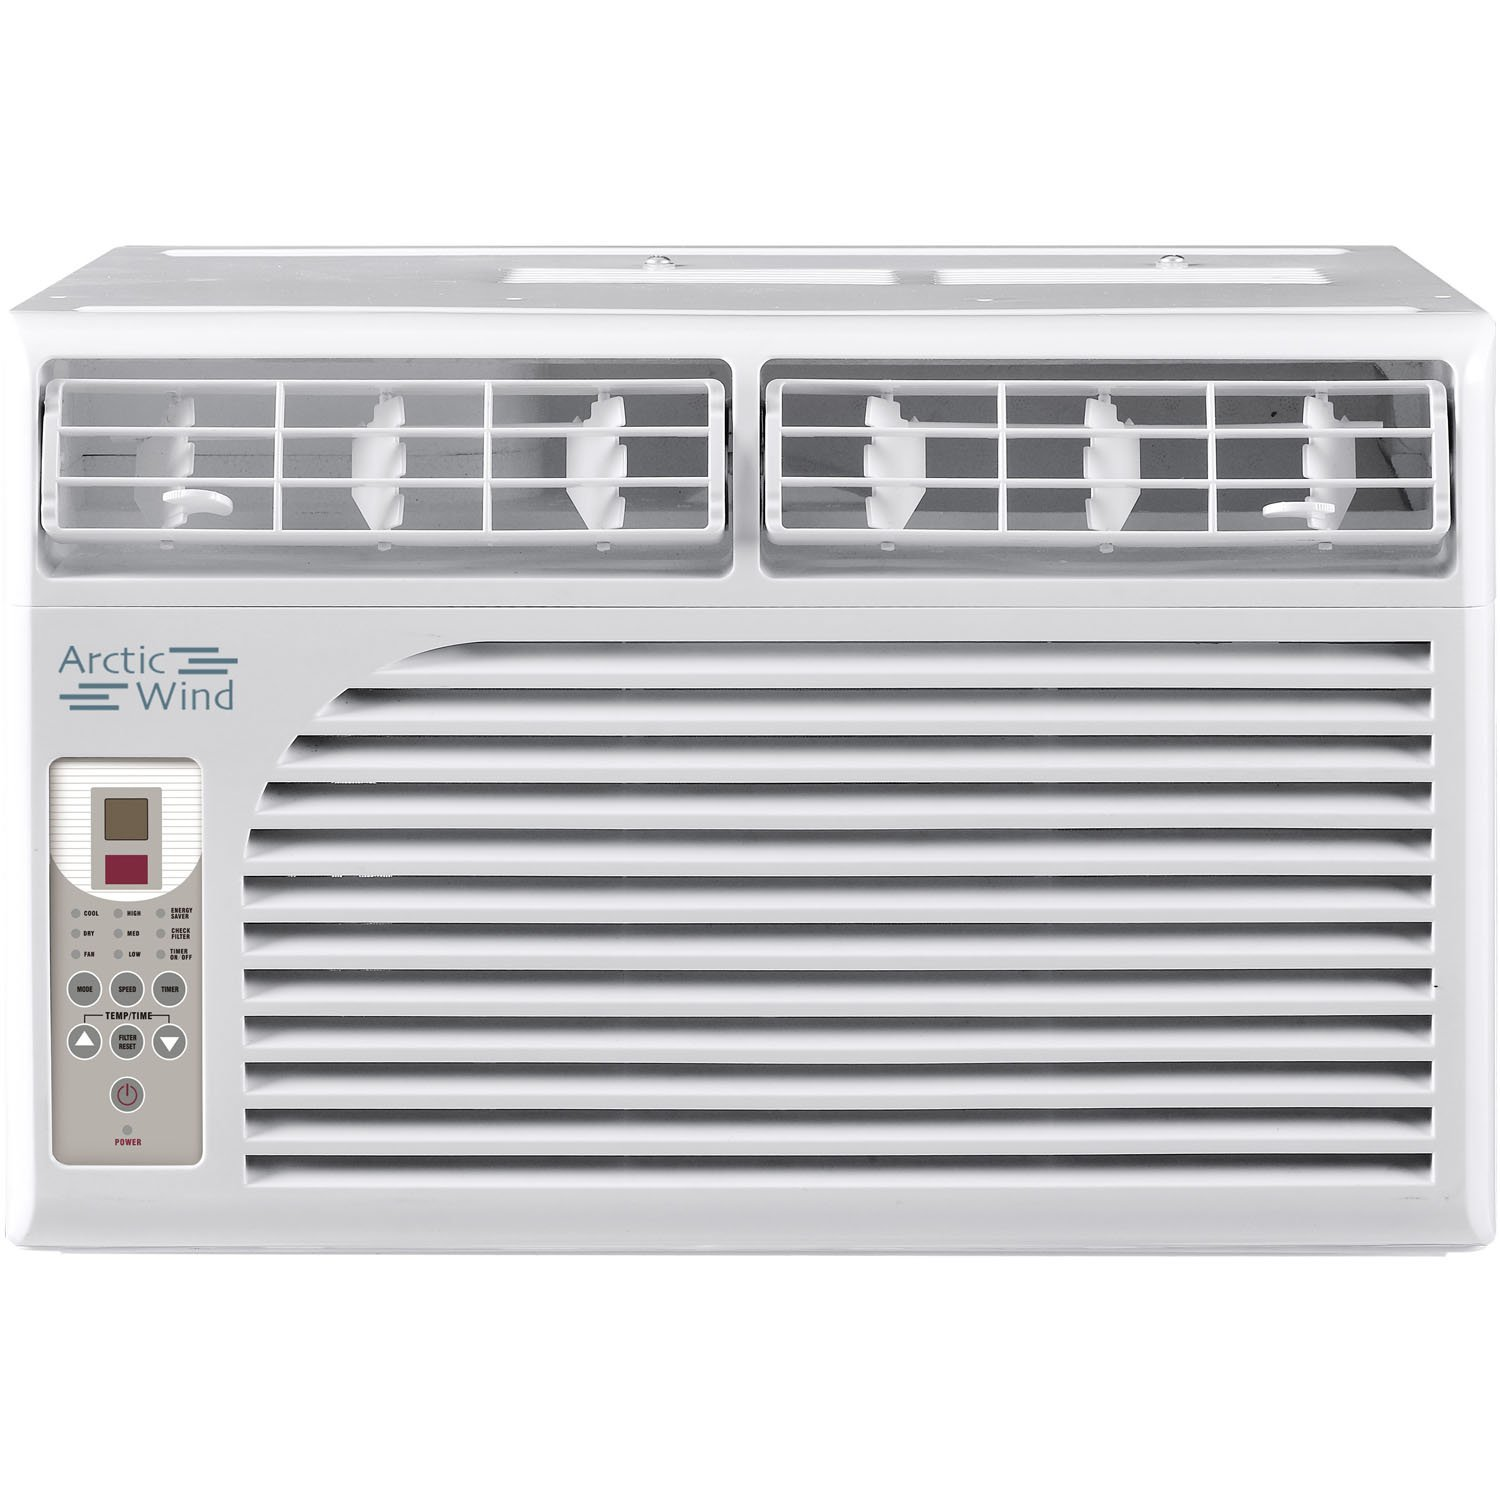 ARCTIC Wind 2016 Energy Star 6,000 BTU Window Air Conditioner, 6000, White by ARCTIC